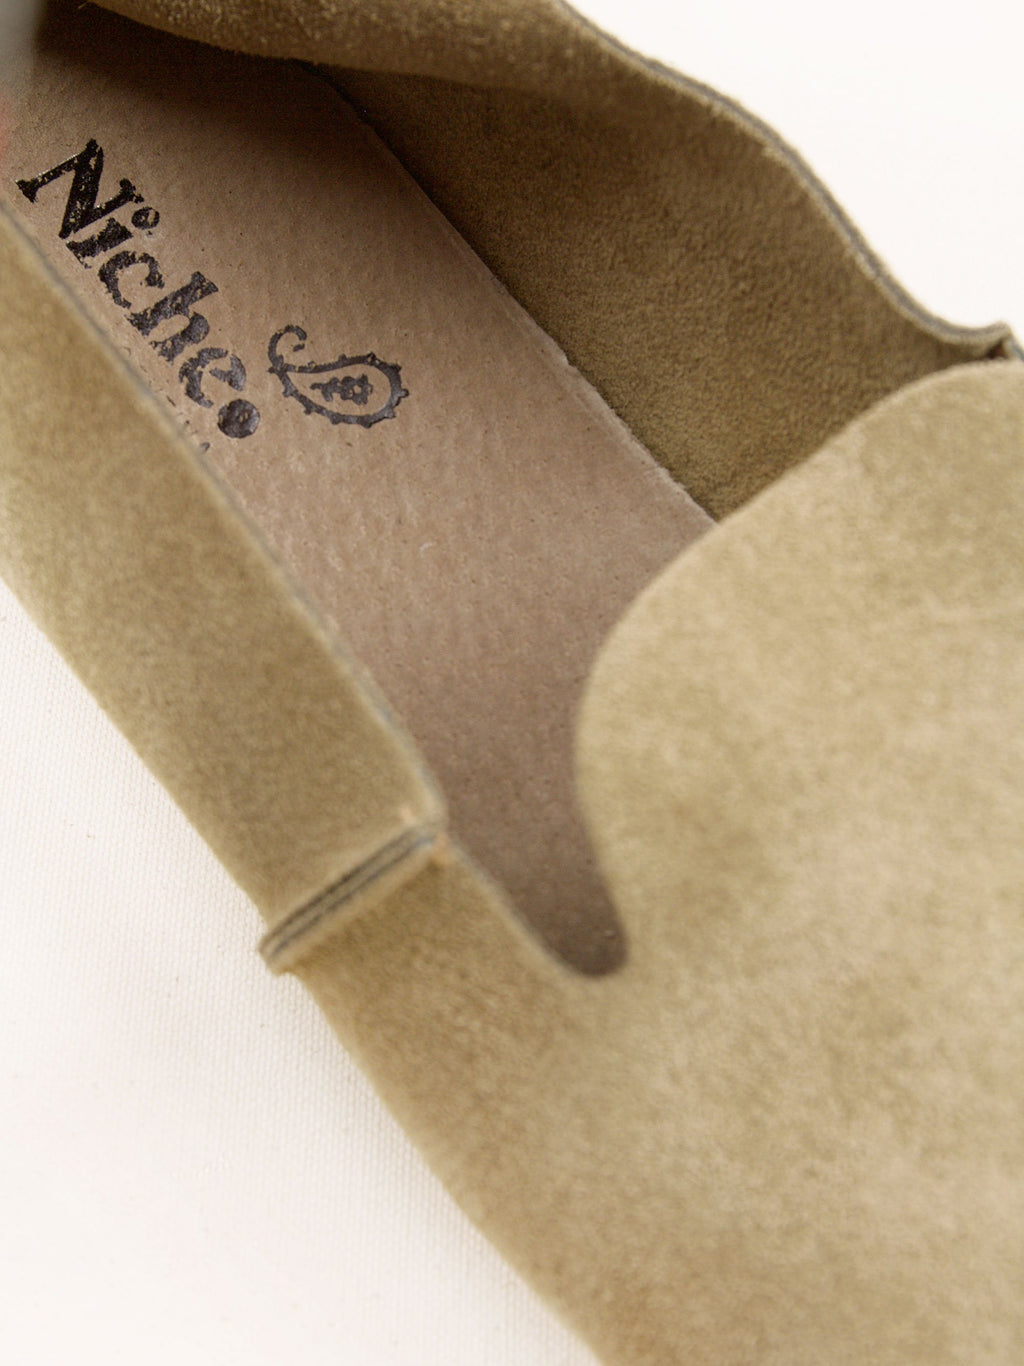 Namu Shop - Niche Marco Slip On Shoes